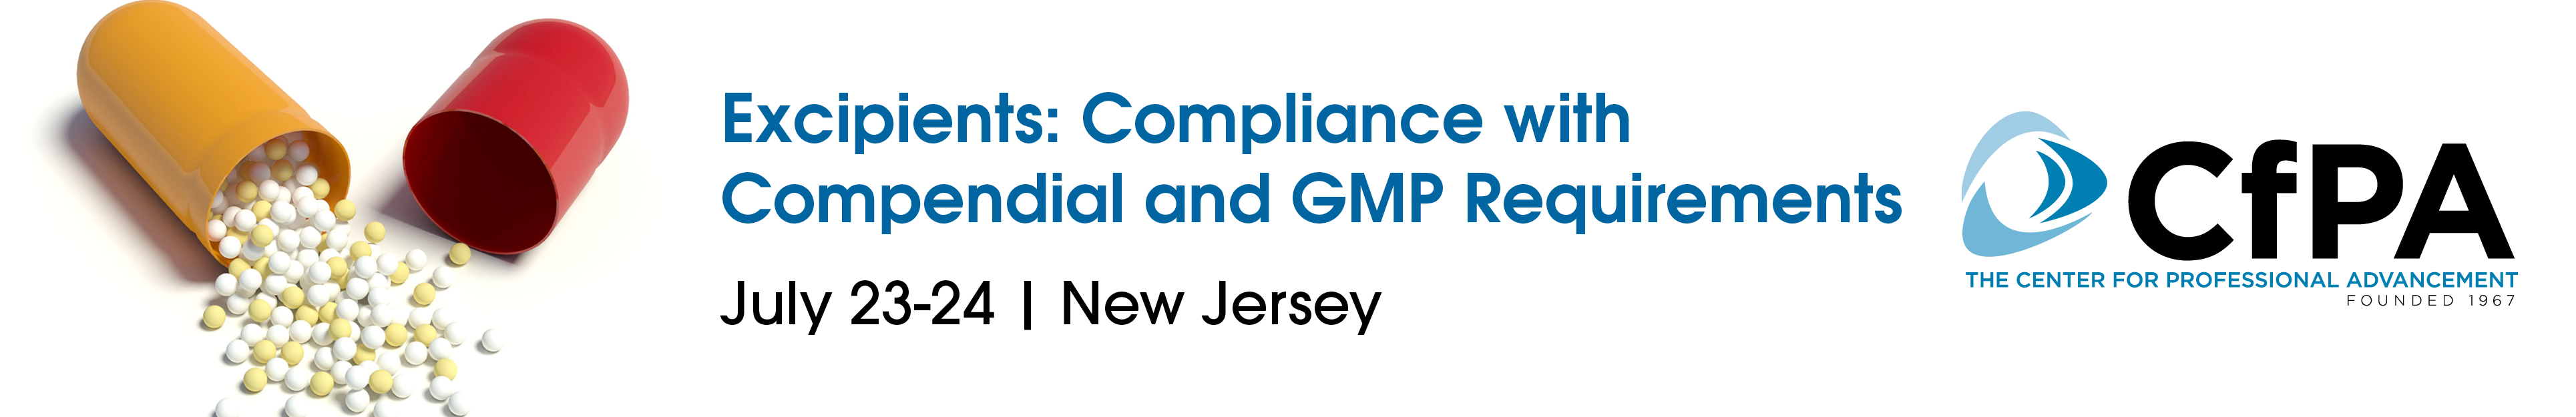 Excipients: Compliance with Compendial and GMP Requirements